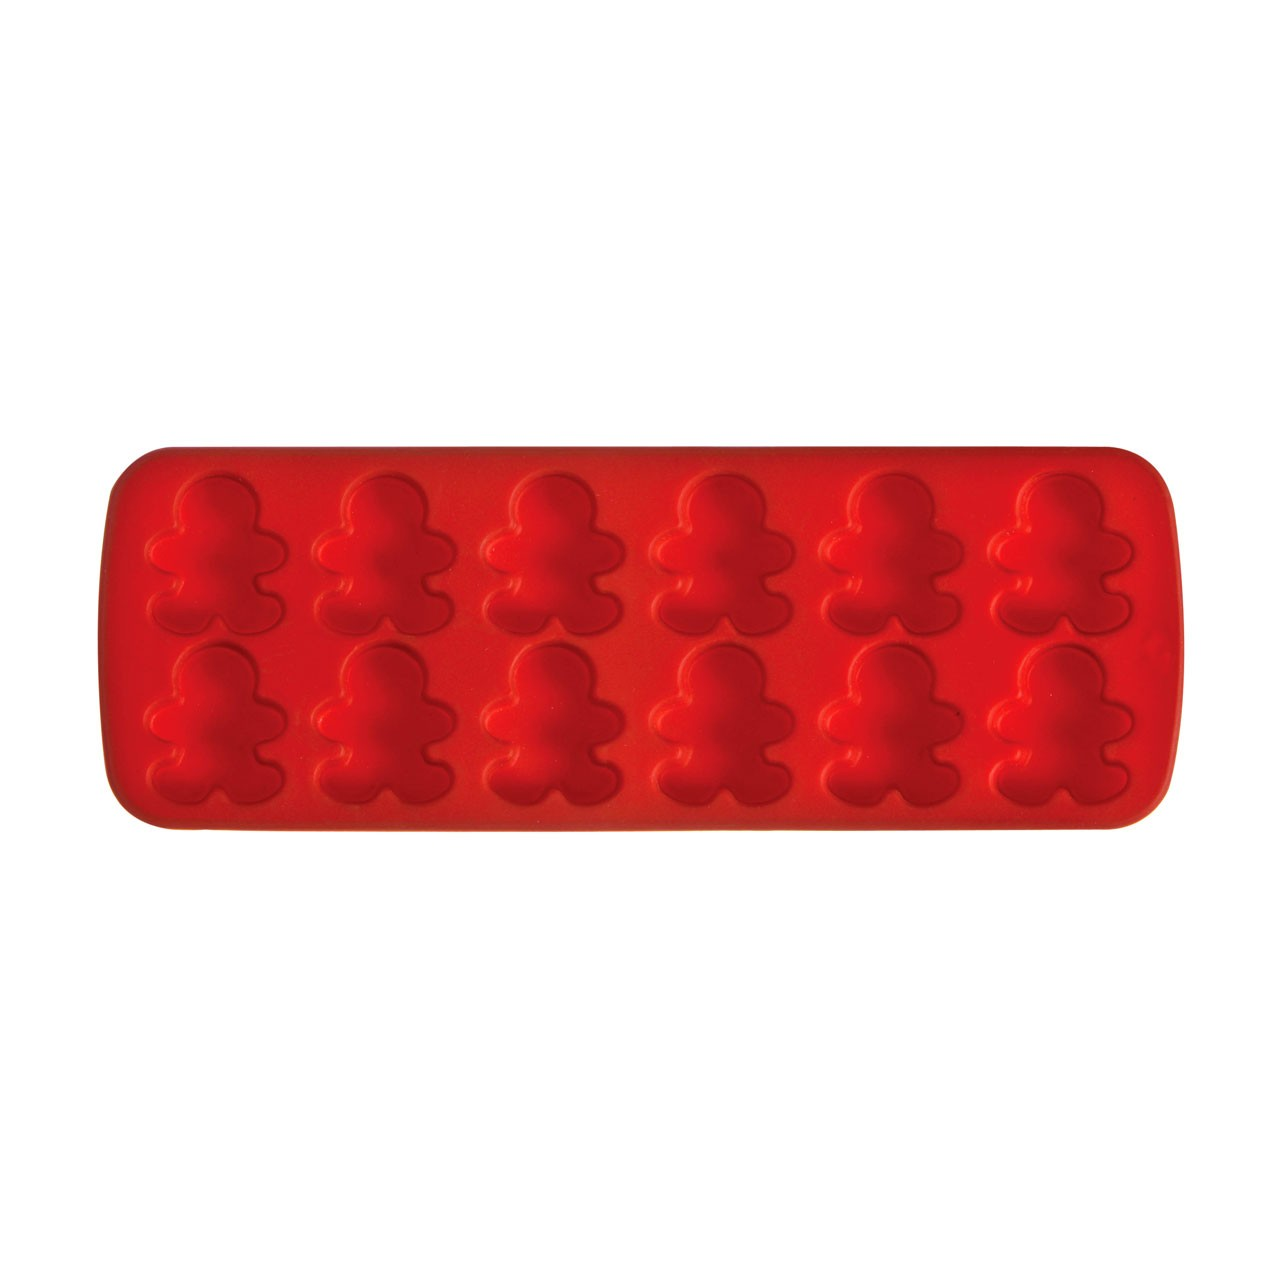 Prime Furnishing 12 Gingerbread Man Cake Mould Tray - Red